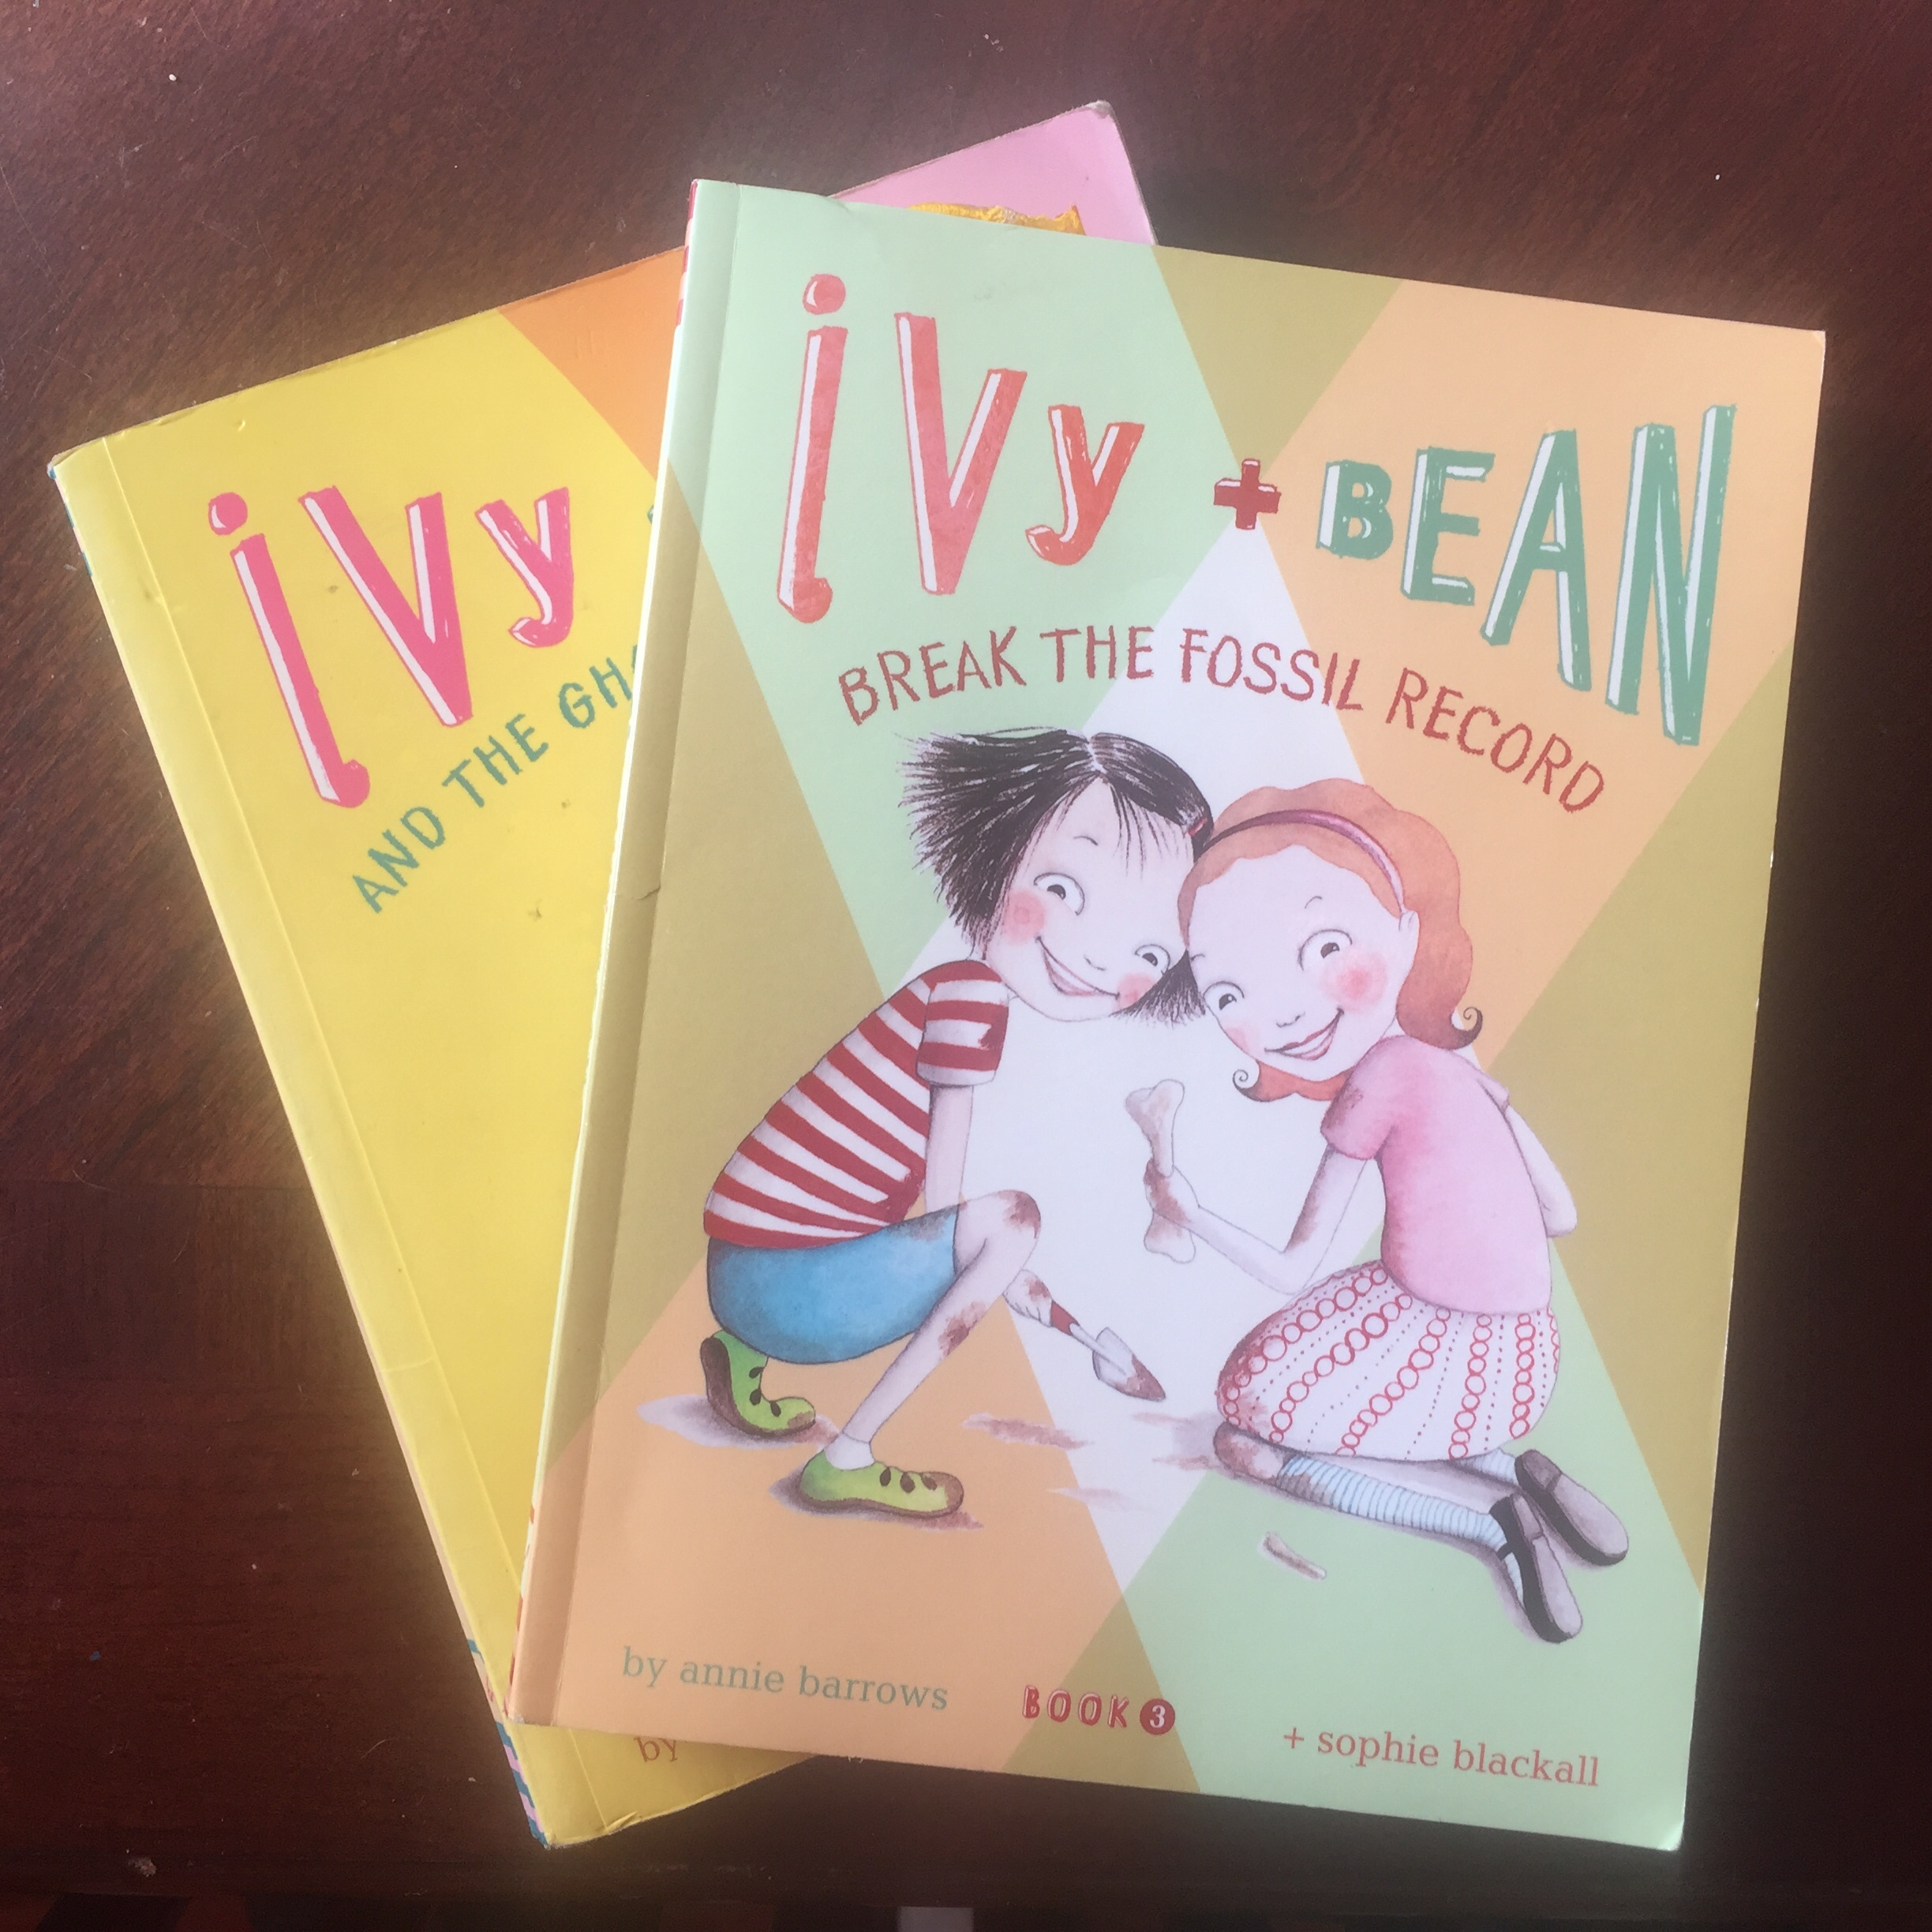 Ivy and Bean books by Annie Barrows Break the Fossil Record and The Ghost who